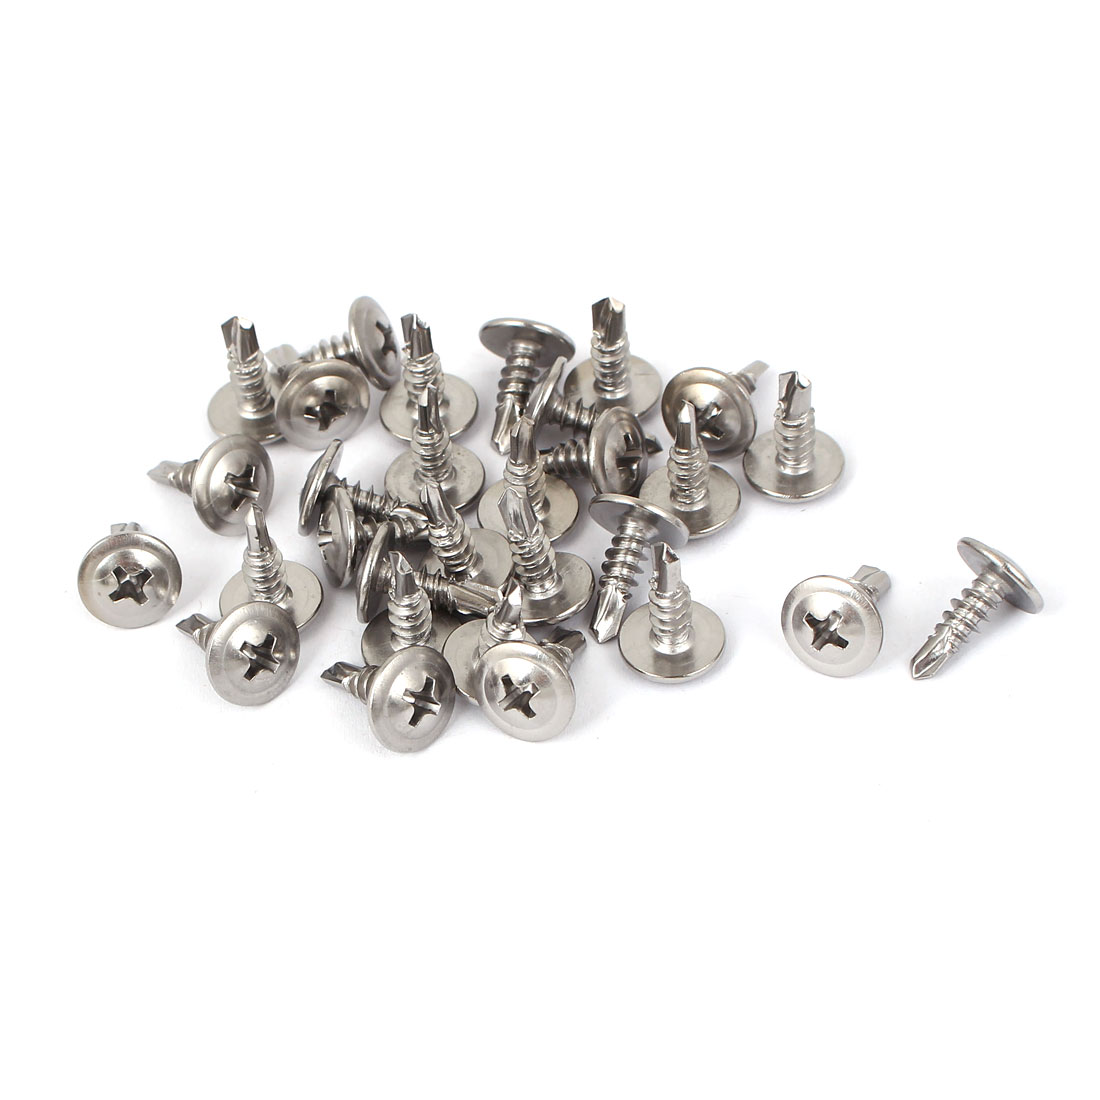 M4.2 Thread Round Phillips Head Self Drilling Tapping Screws 30pcs